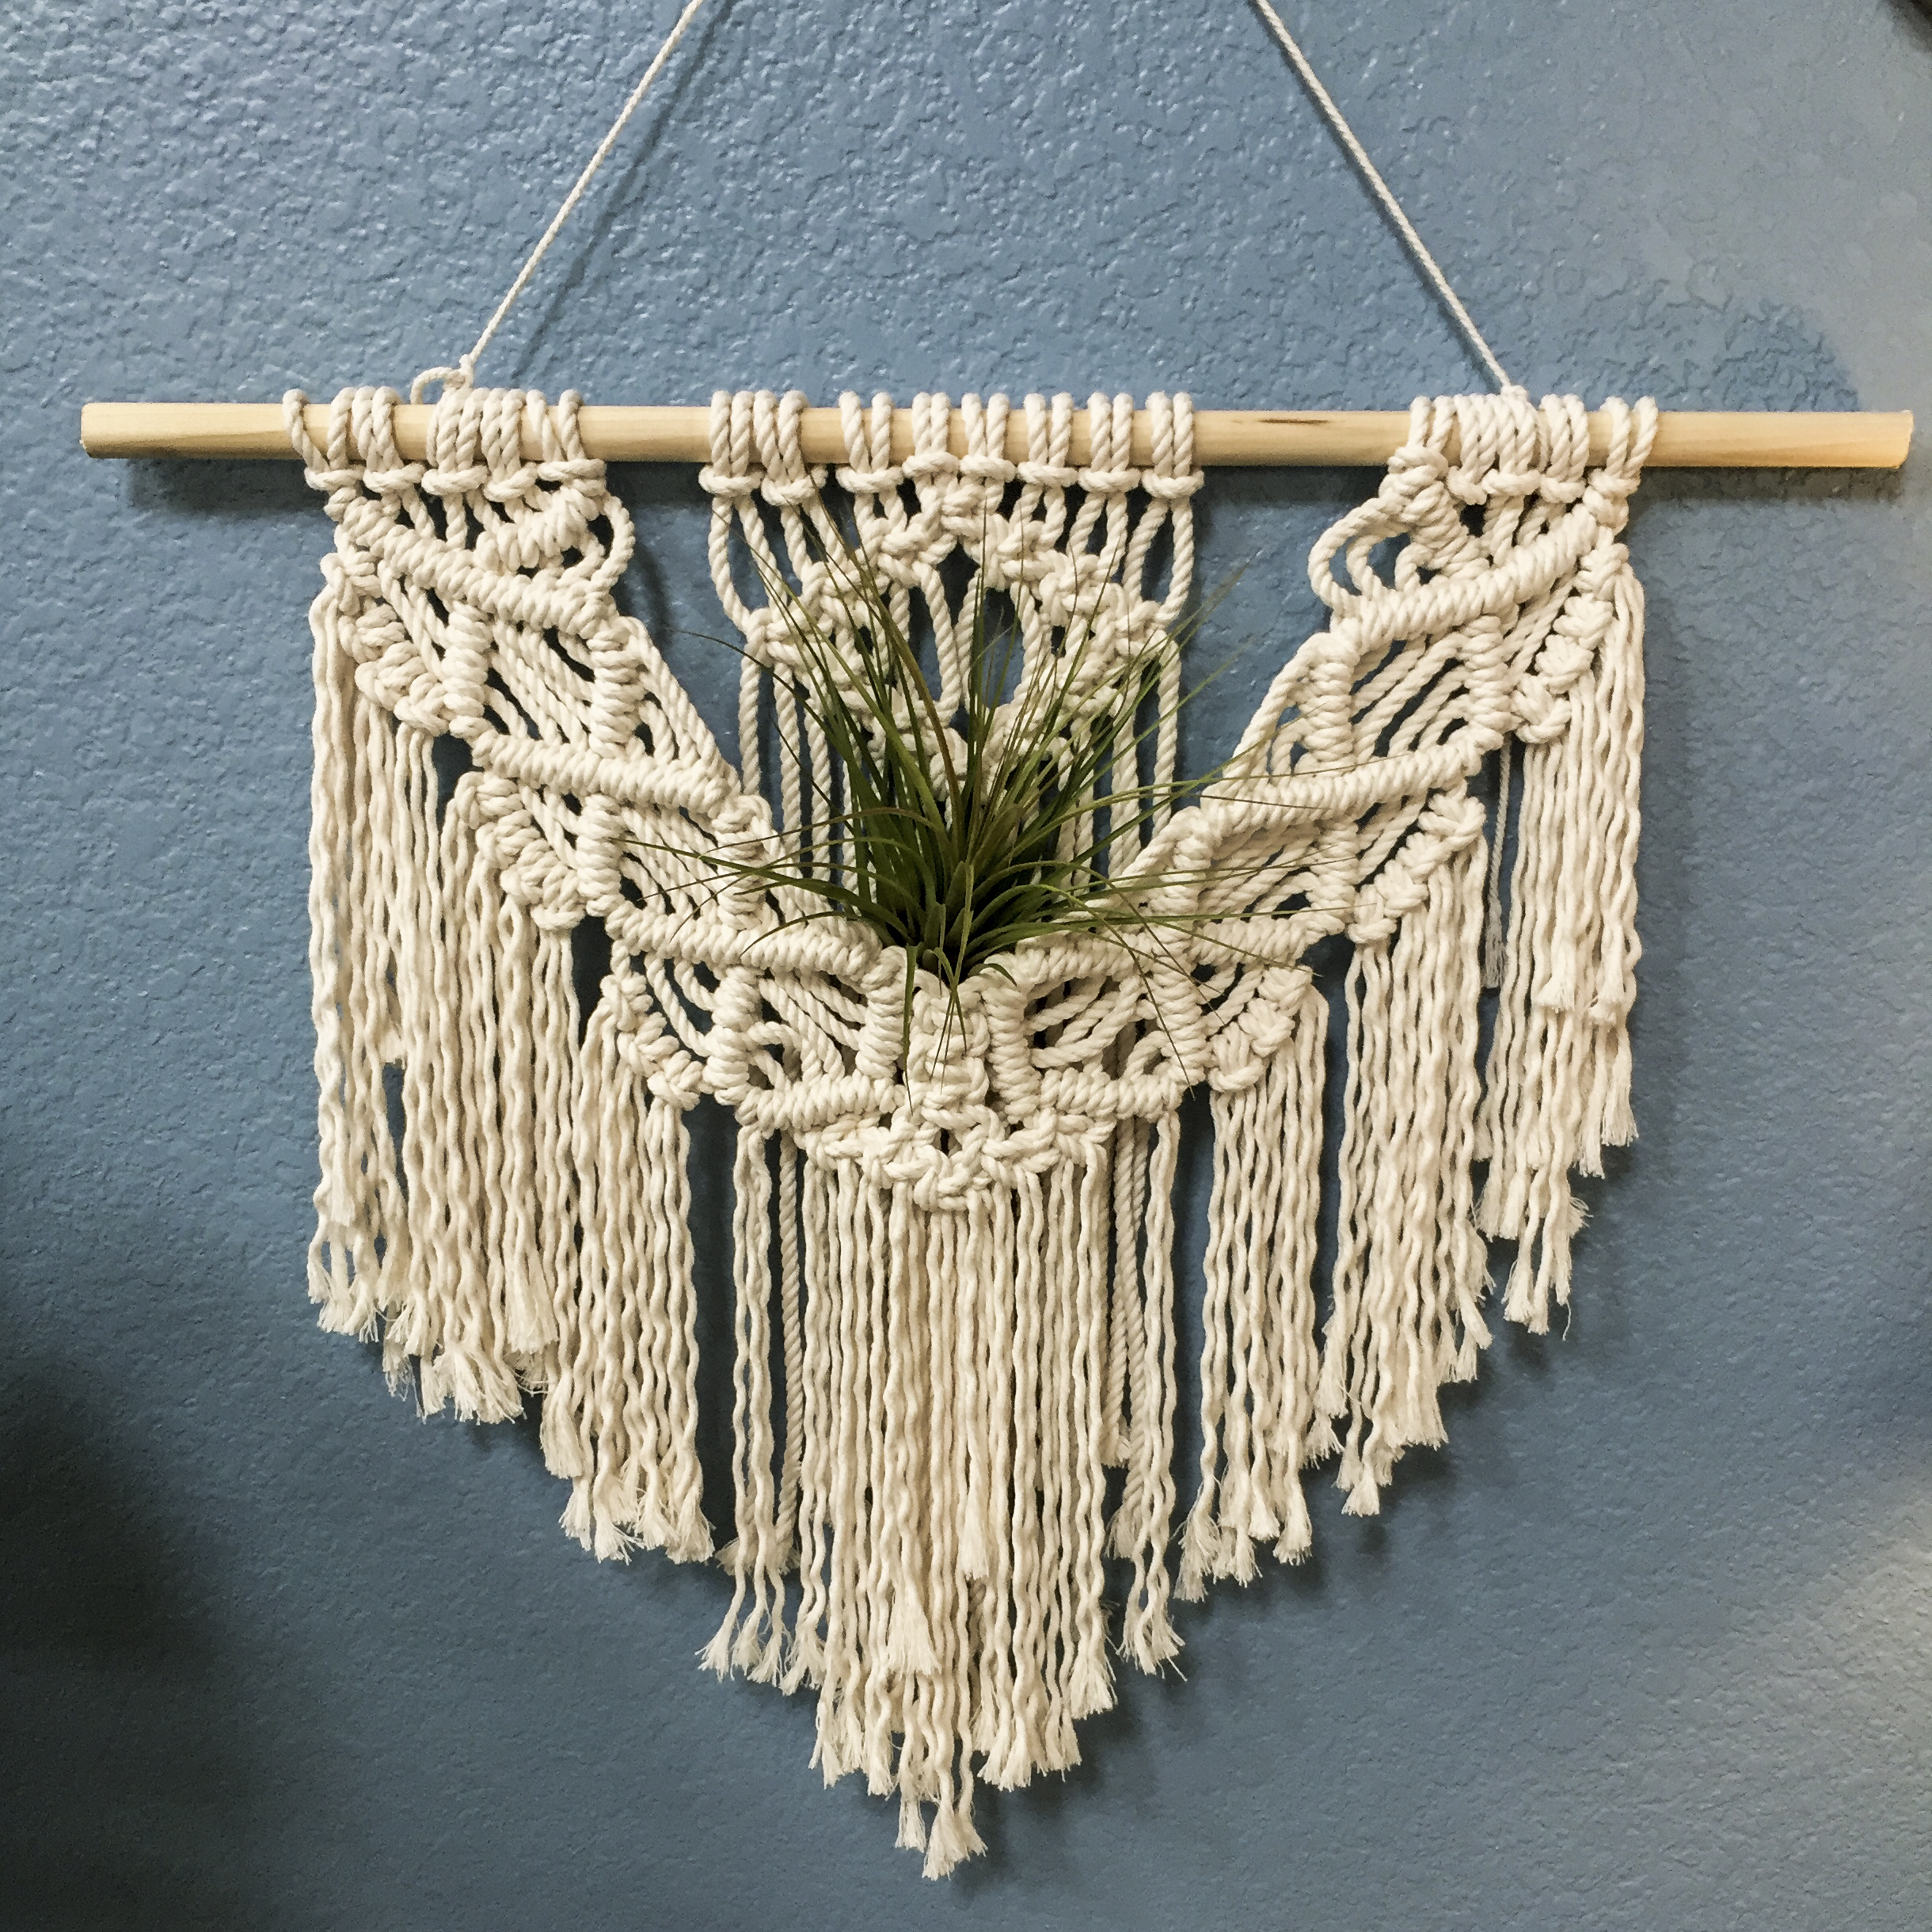 theknotspot large macrame wall hang with airplant 1.jpg